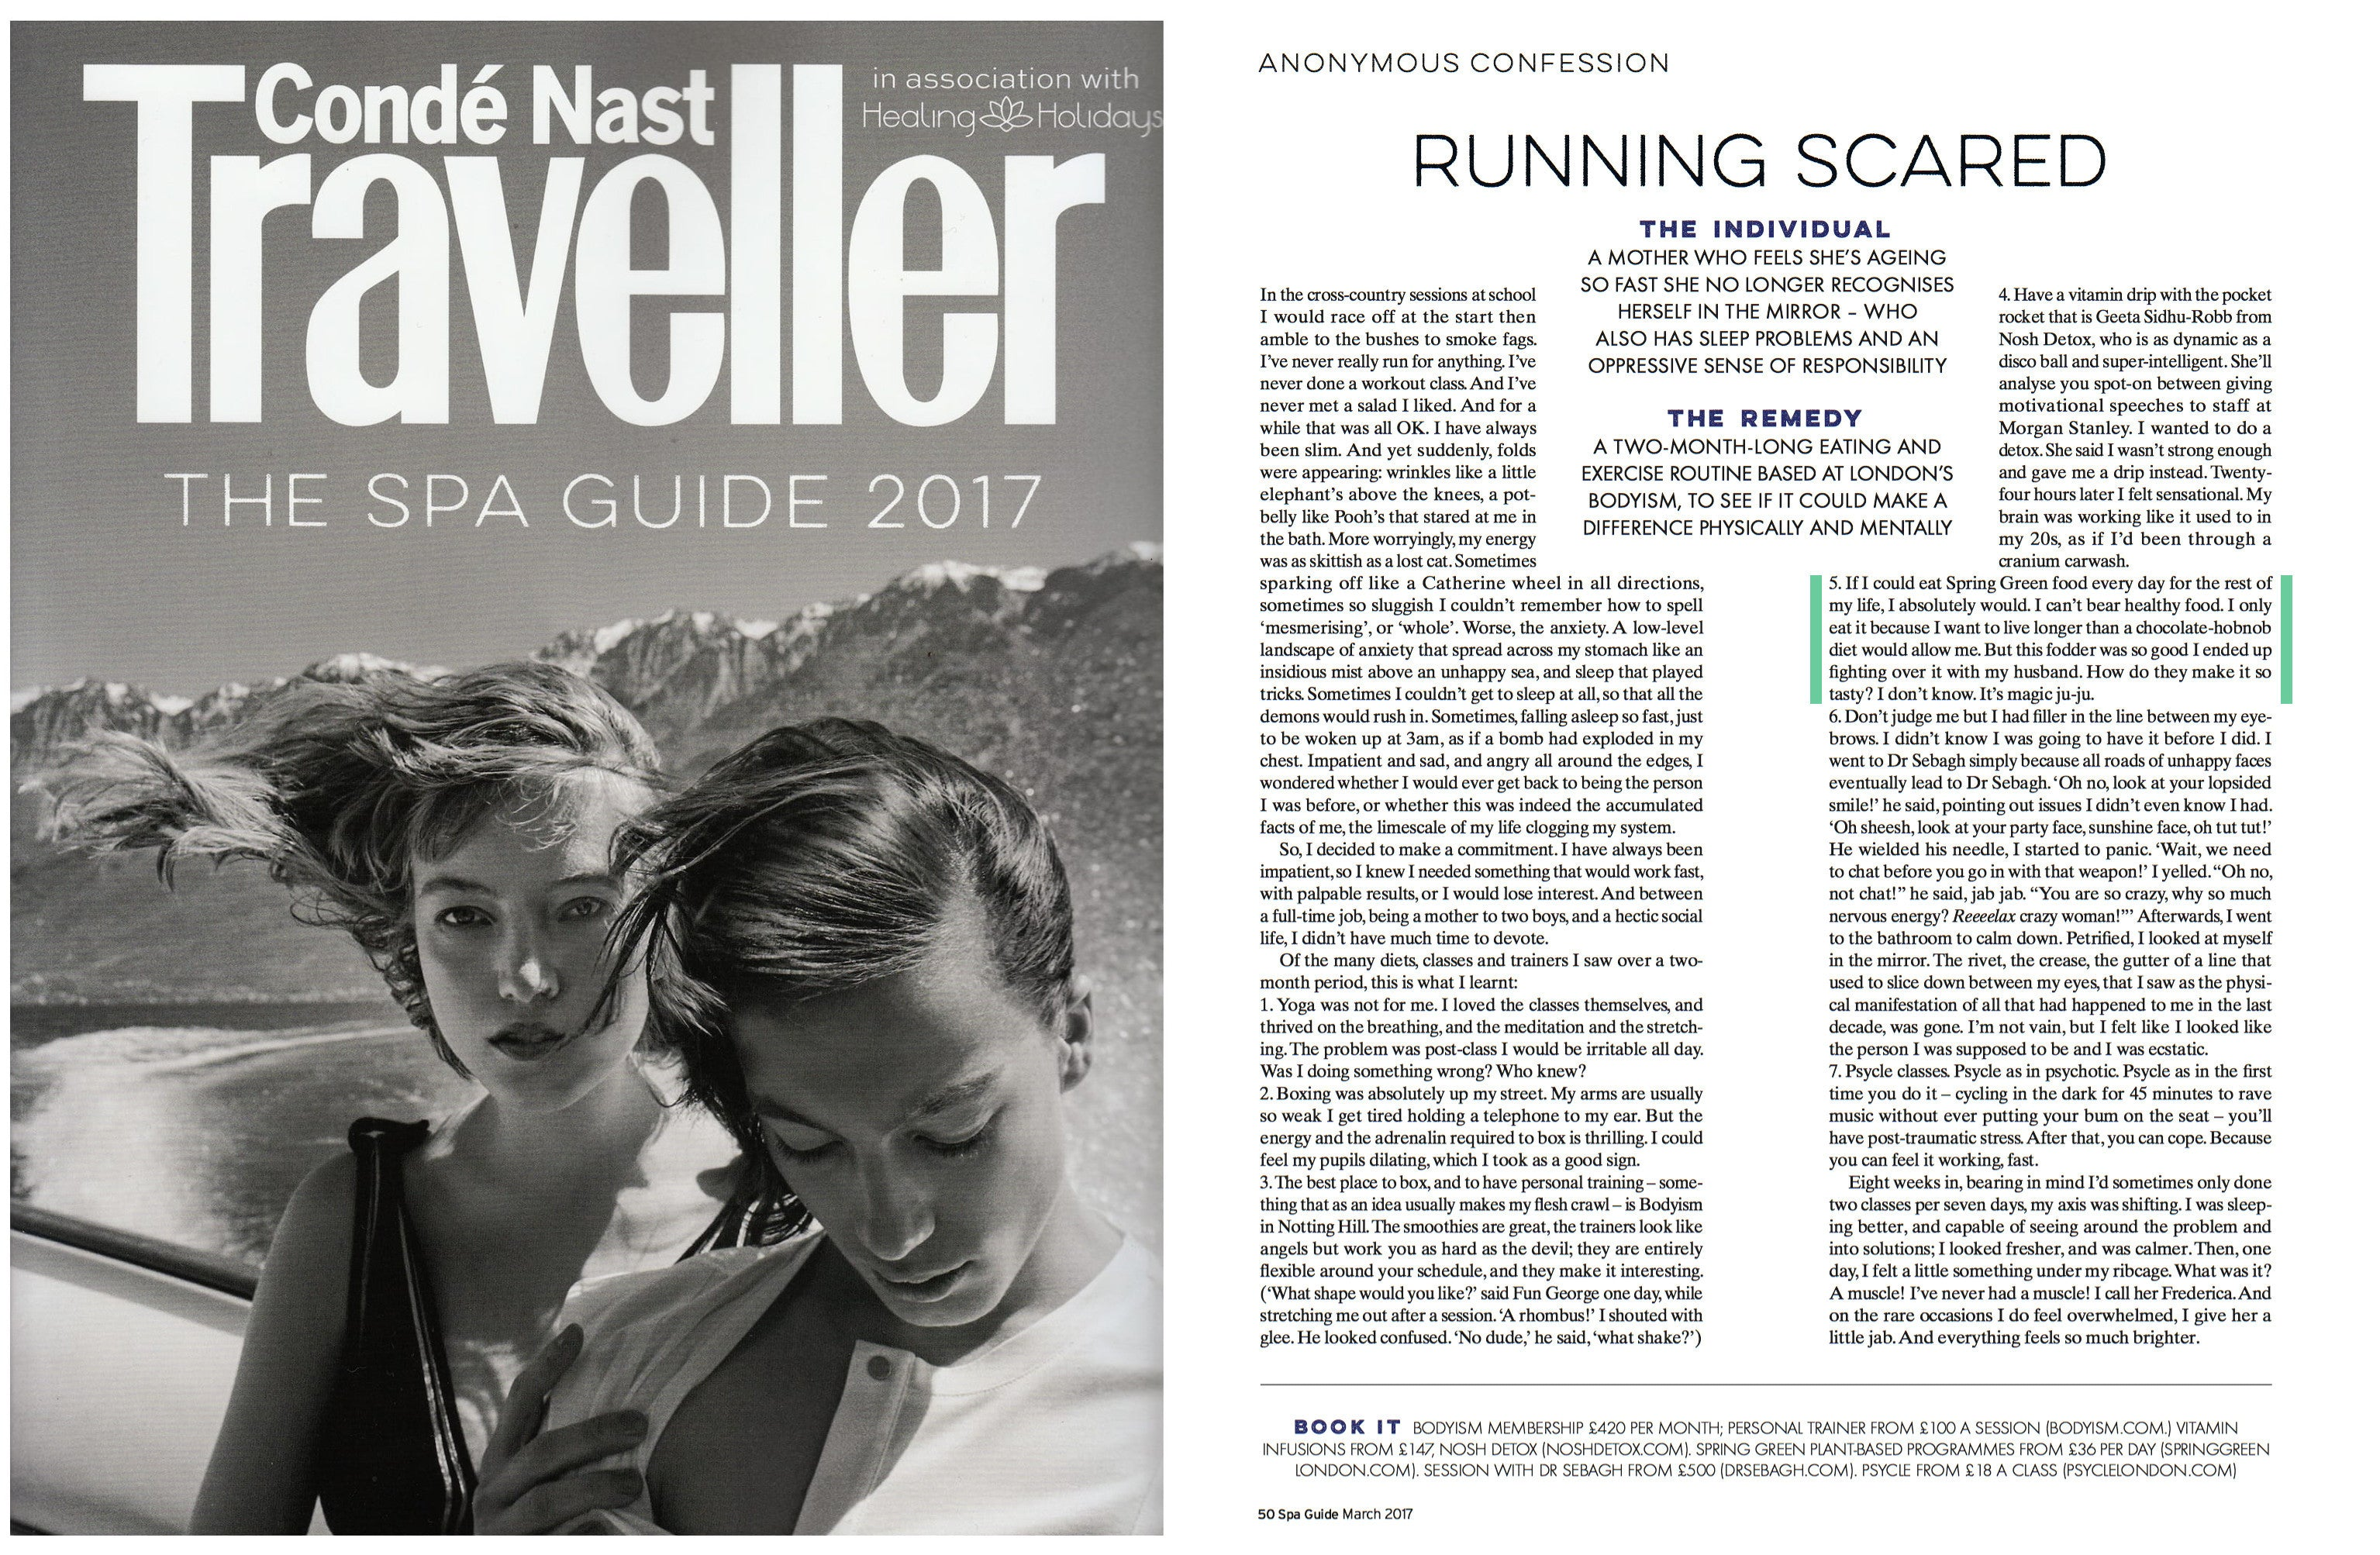 Conde Nast Traveler Spa Guide 2017 featuring Spring Green London